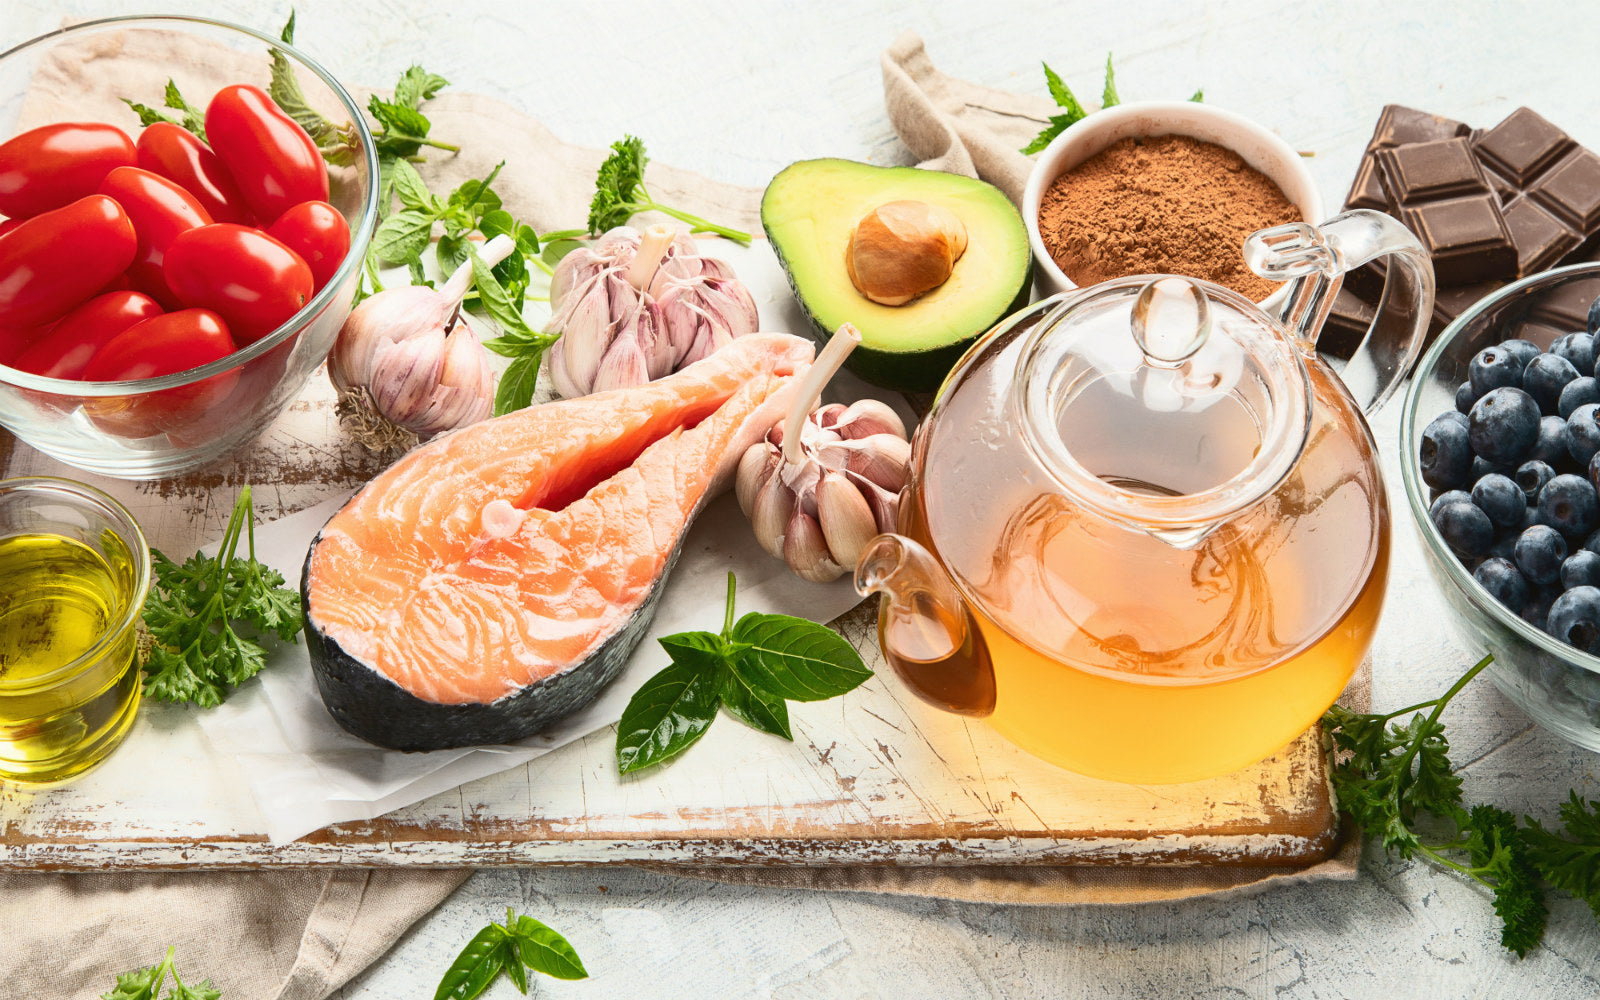 The Top 10 Foods To Reduce Inflammation